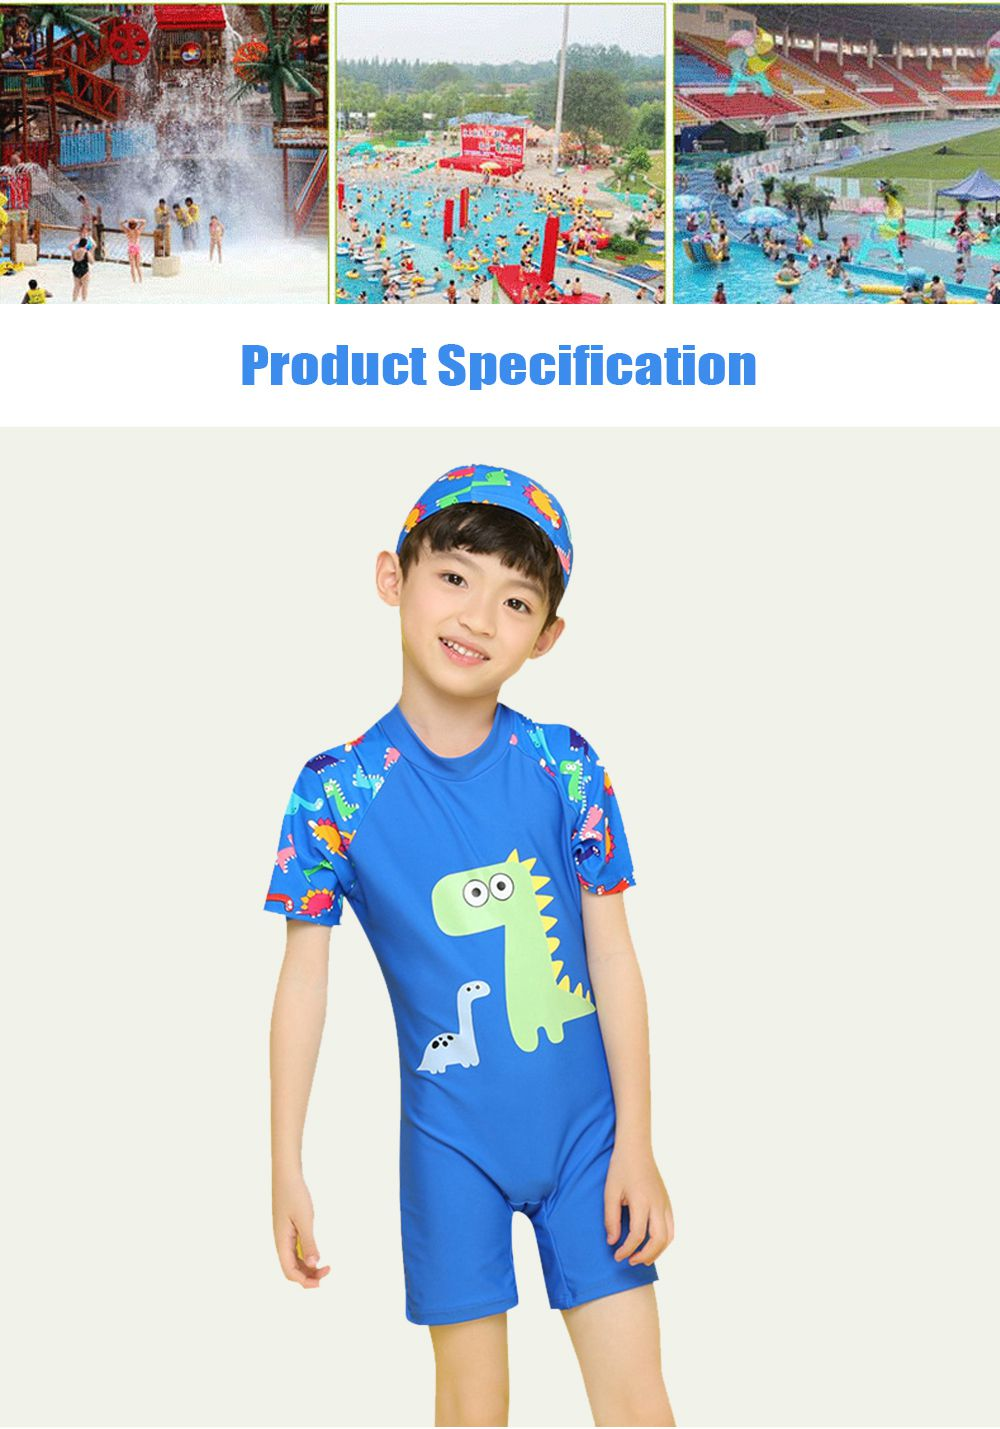 Little Boys One Piece Sunsuit Cute Short Sleeve Surfing Swimsuit Dinosaur Monster Children's Swimsuit with High Elasticity 6